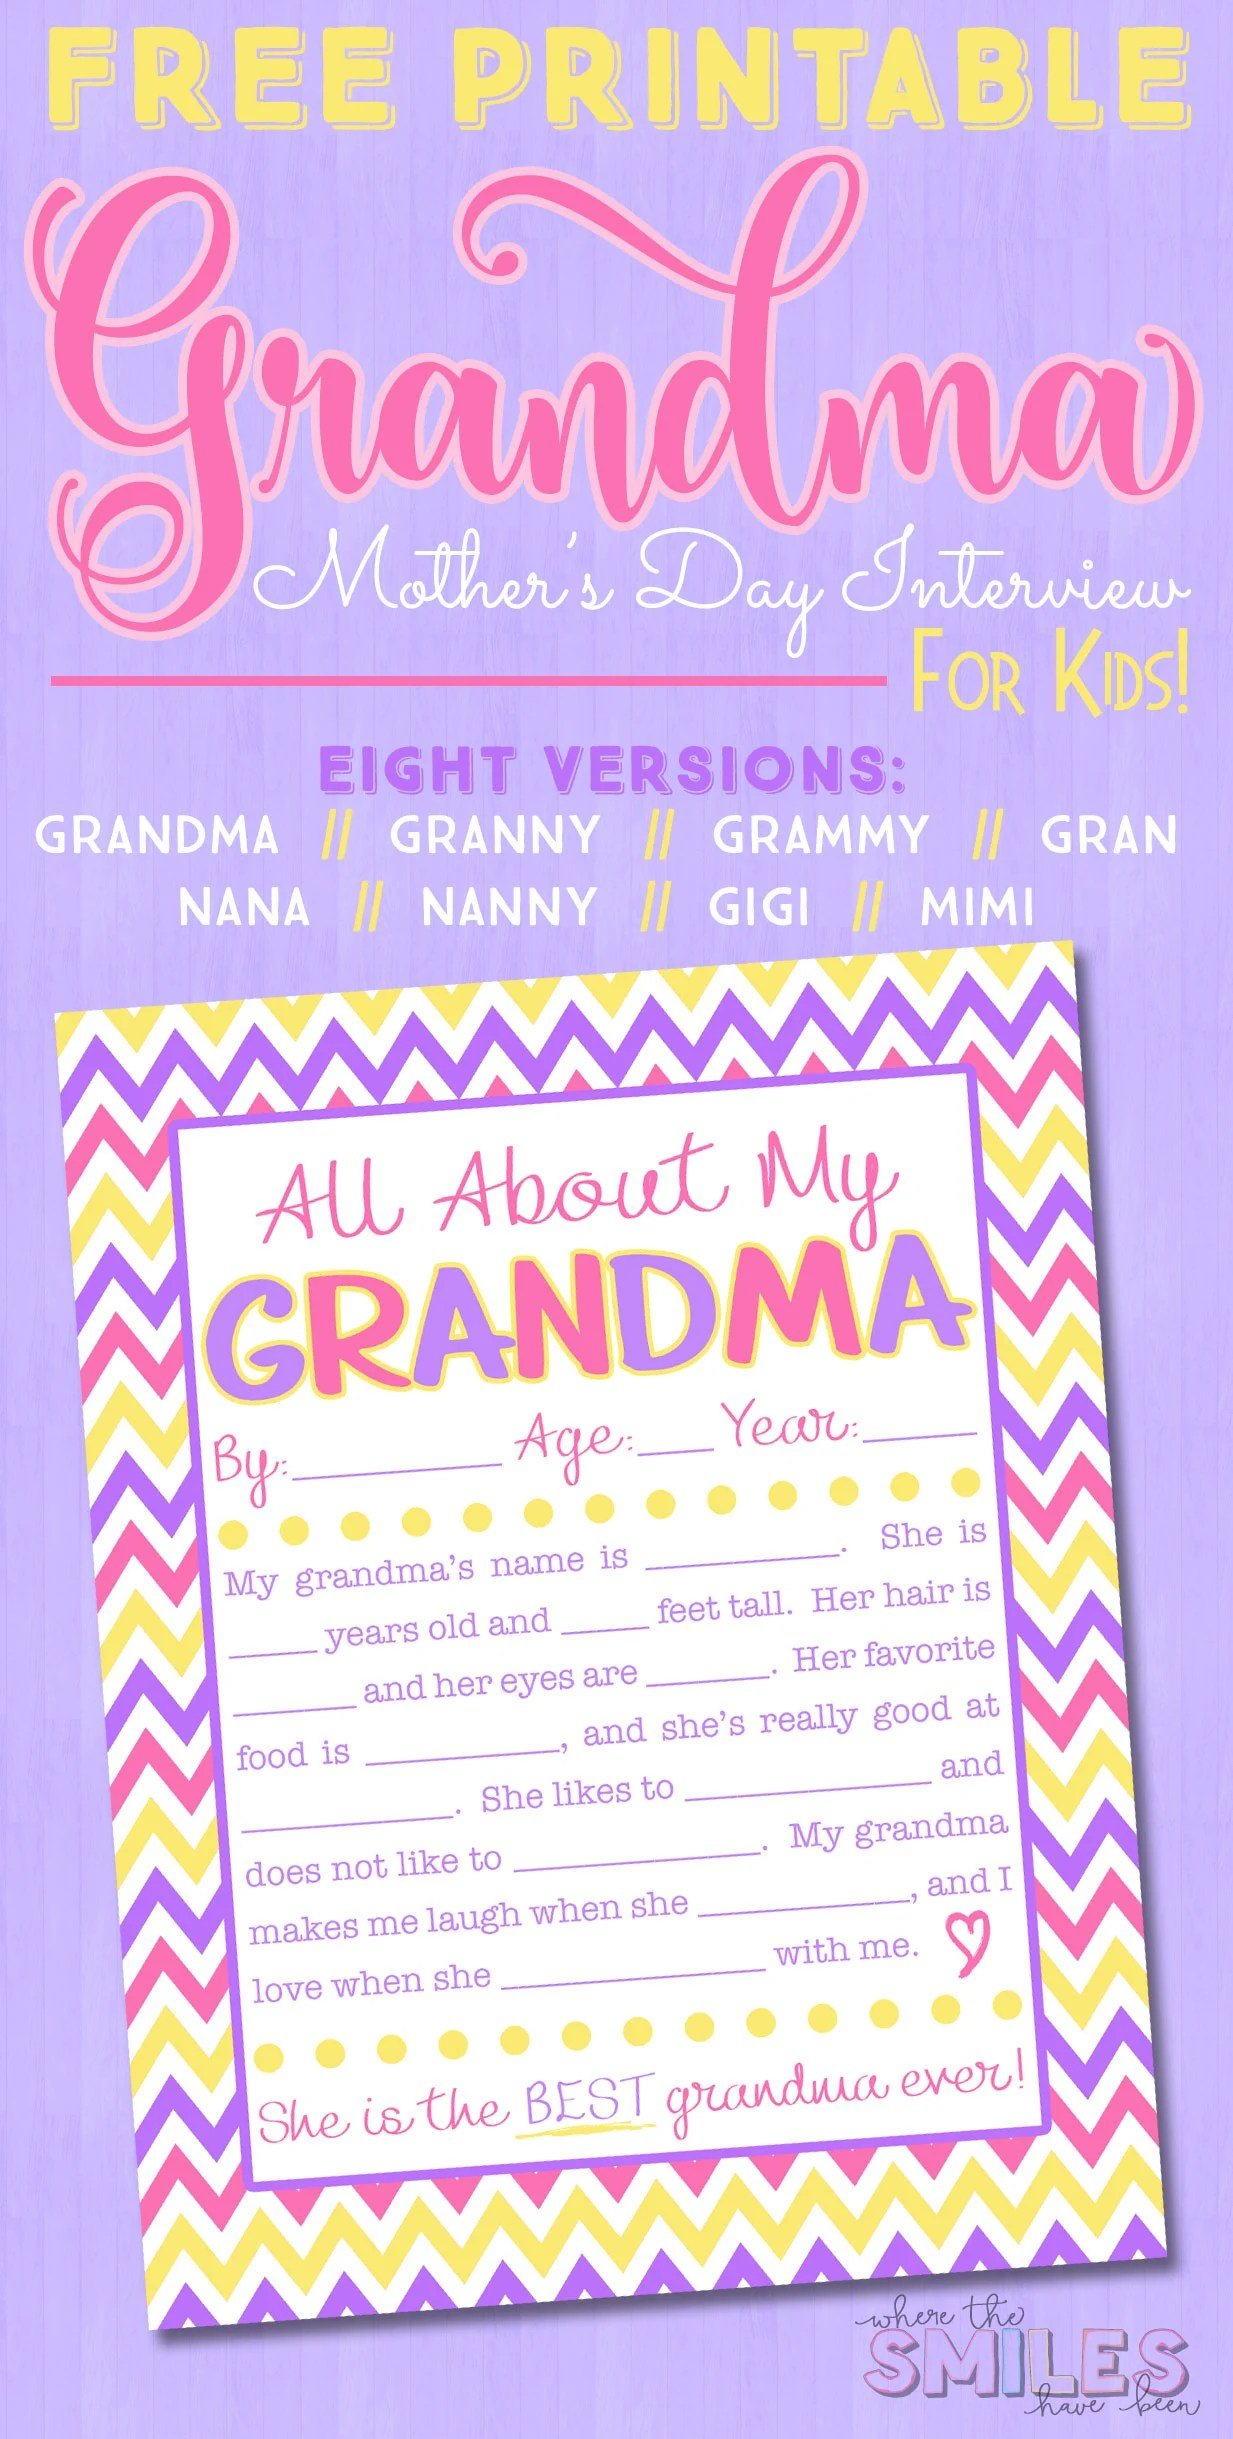 graphic regarding All About My Grandma Printable called All Relating to My Grandma Job interview with Free of charge Printable 8